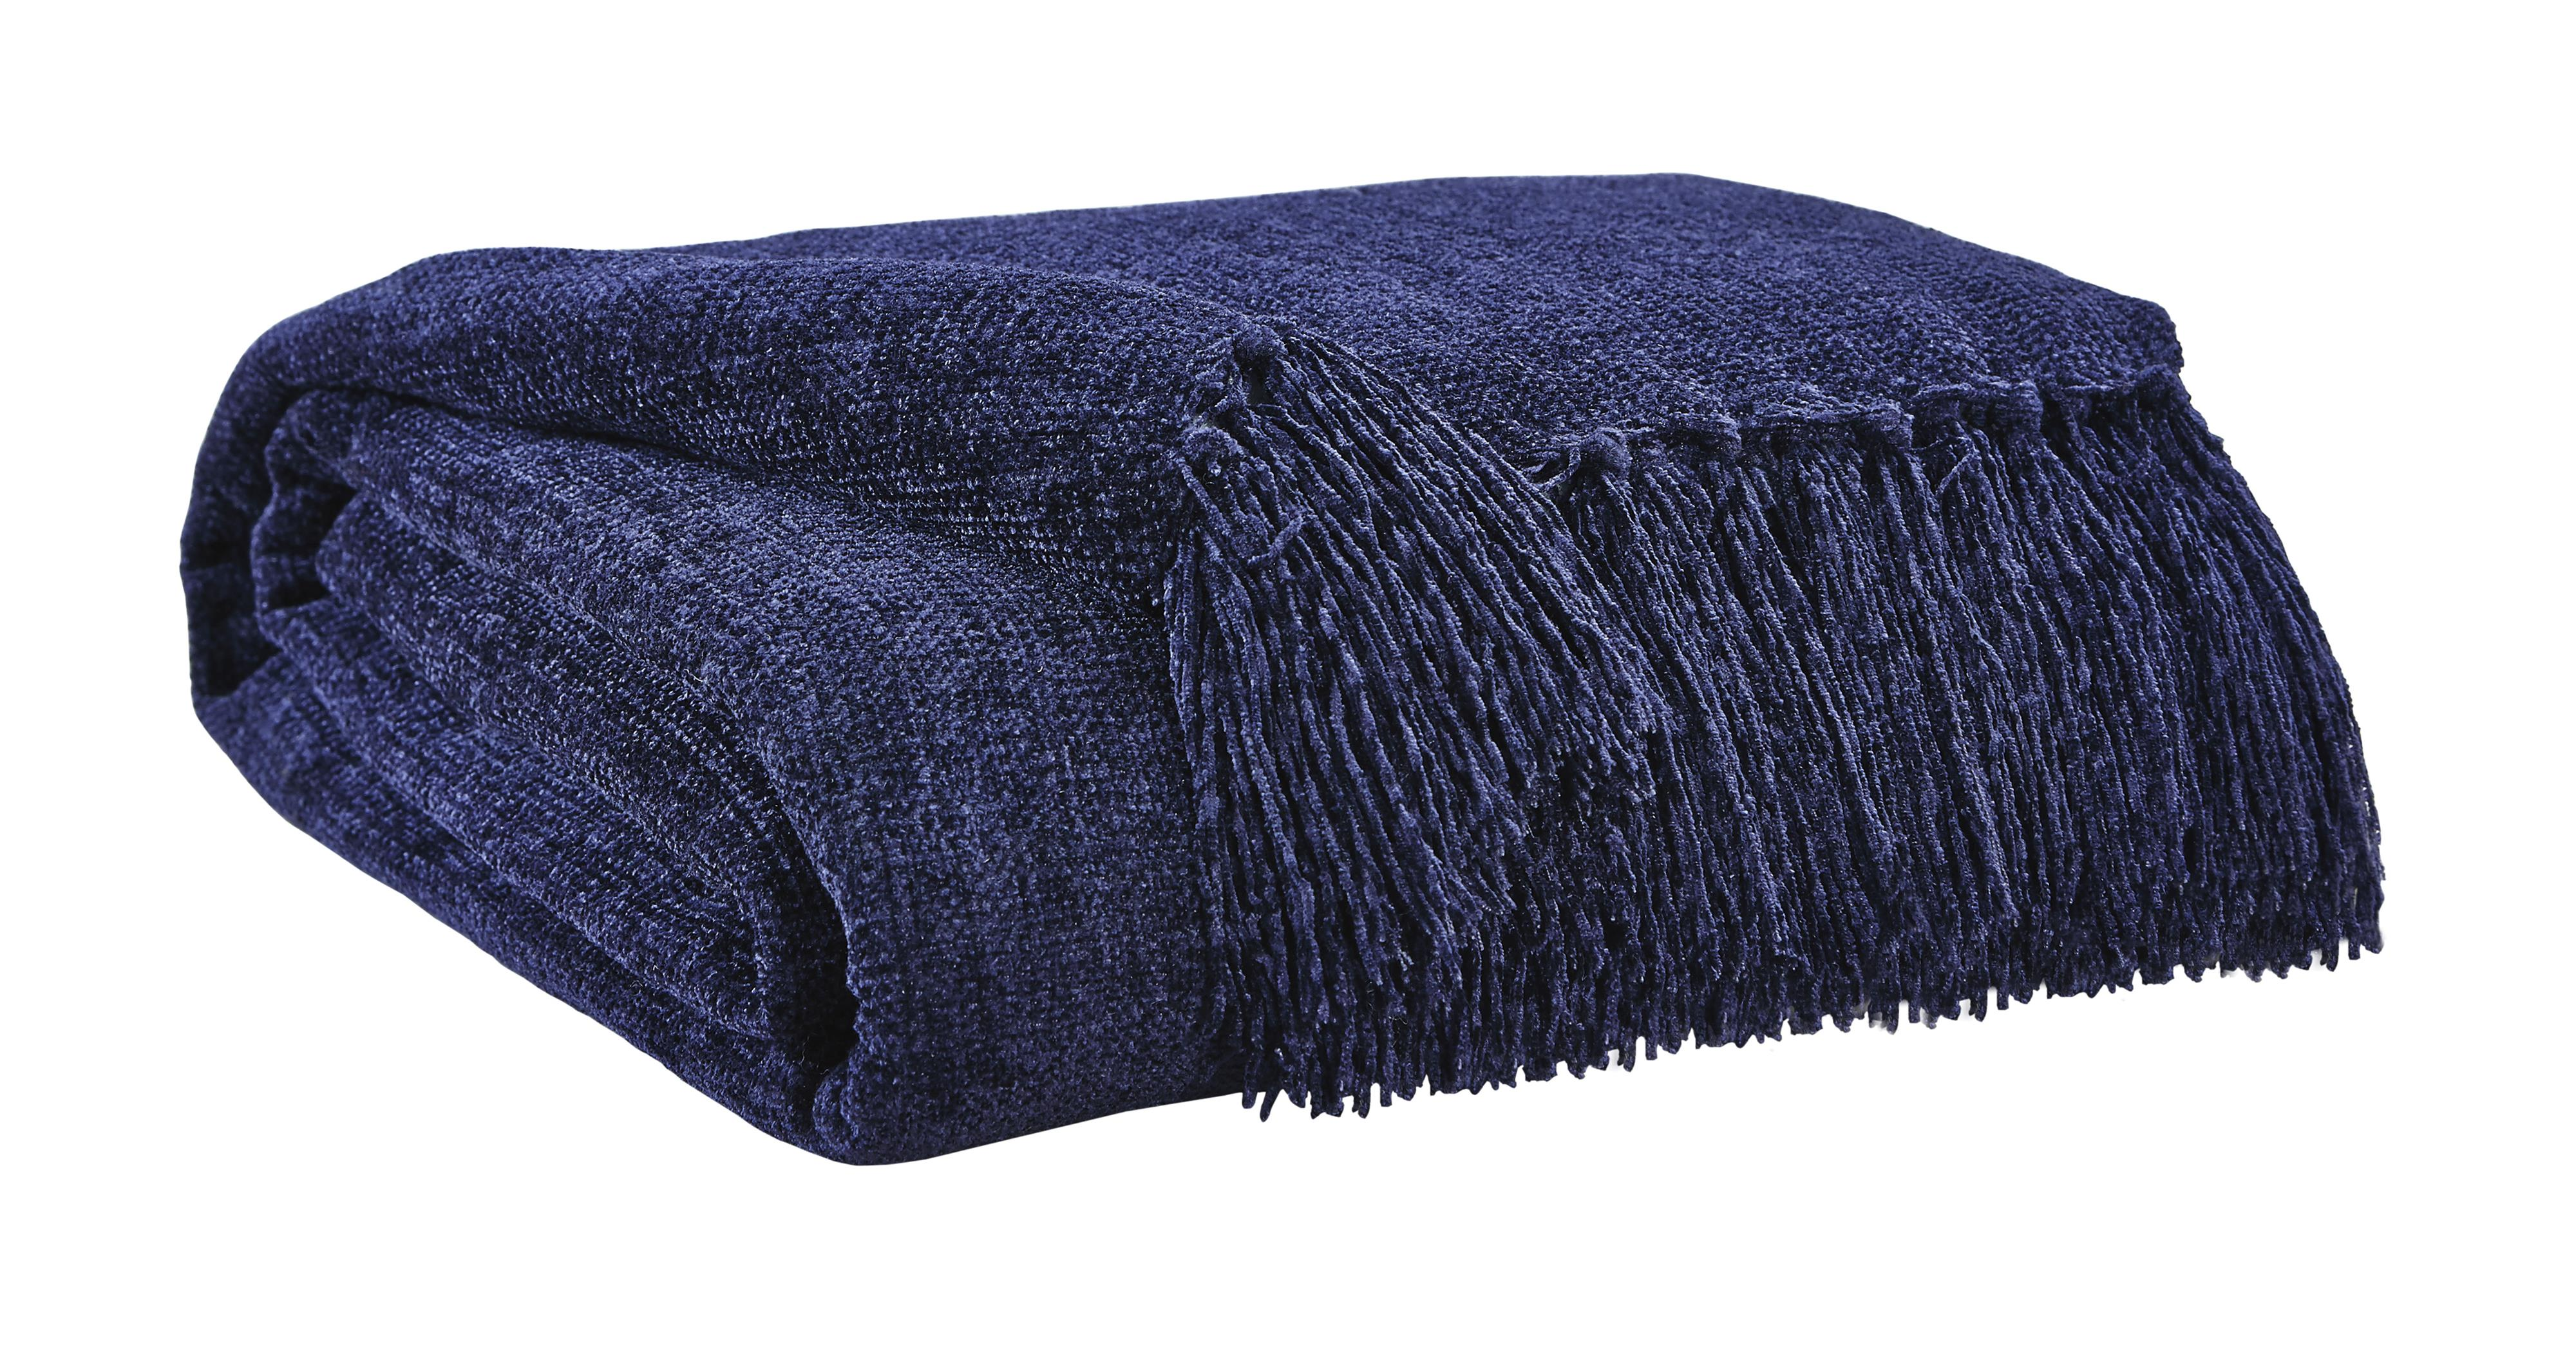 Signature Design by Ashley Throws Danicio - Navy Throw - Item Number: A1000525T